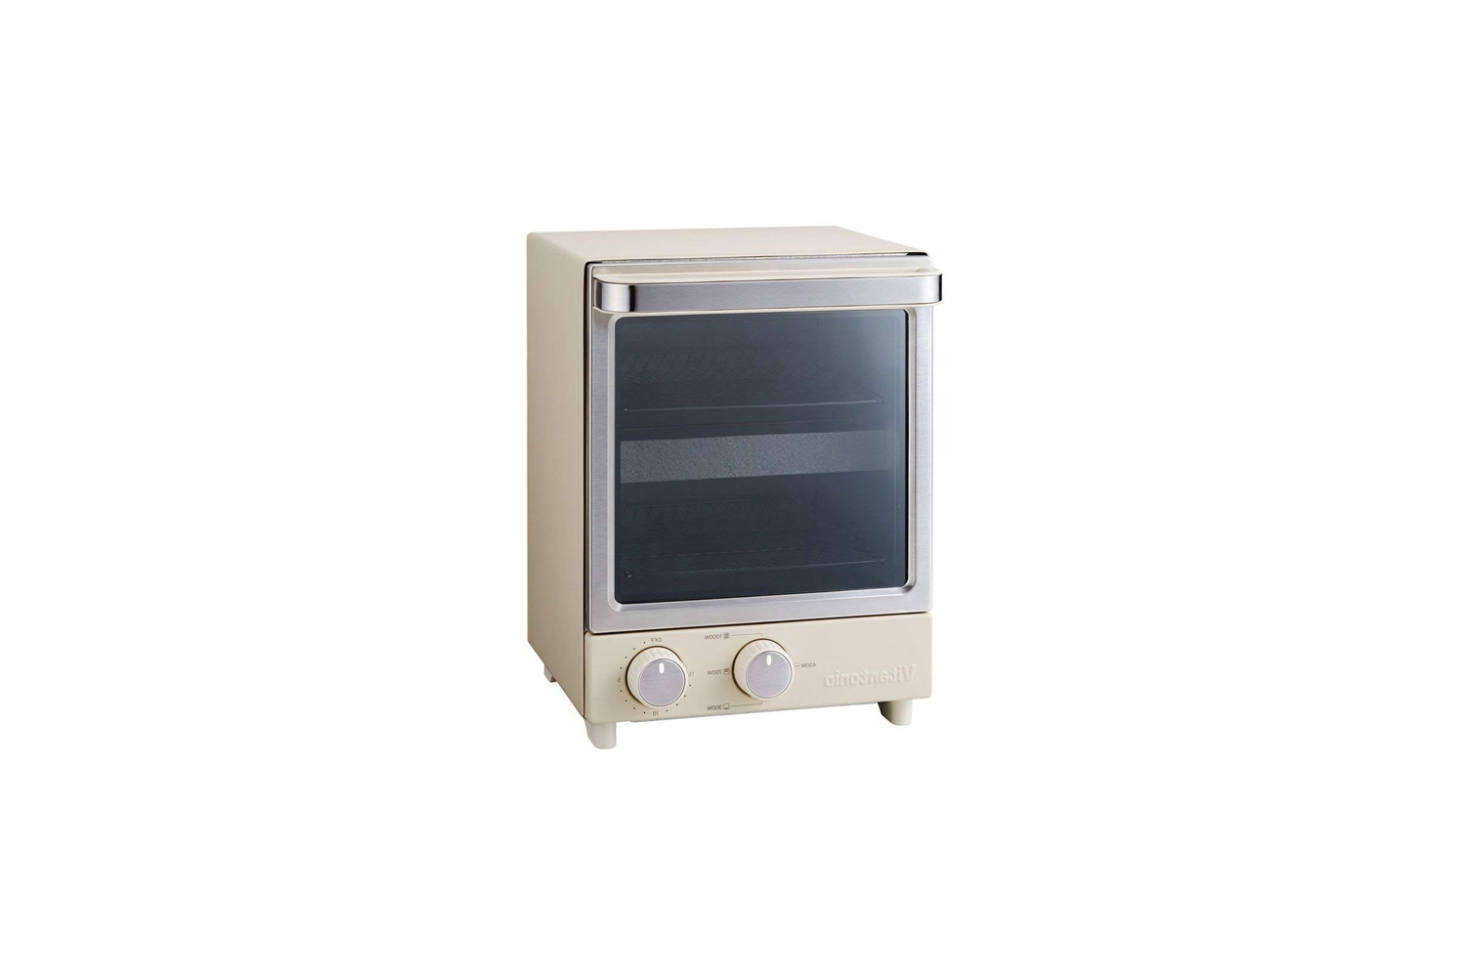 The Vitantonio Vertical Type Toaster Oven, shown in Ivory (also available in Brown) measures  inches wide and  inches high; $8. on Amazon. (Power supply AC 0 V 50/60 Hz.)